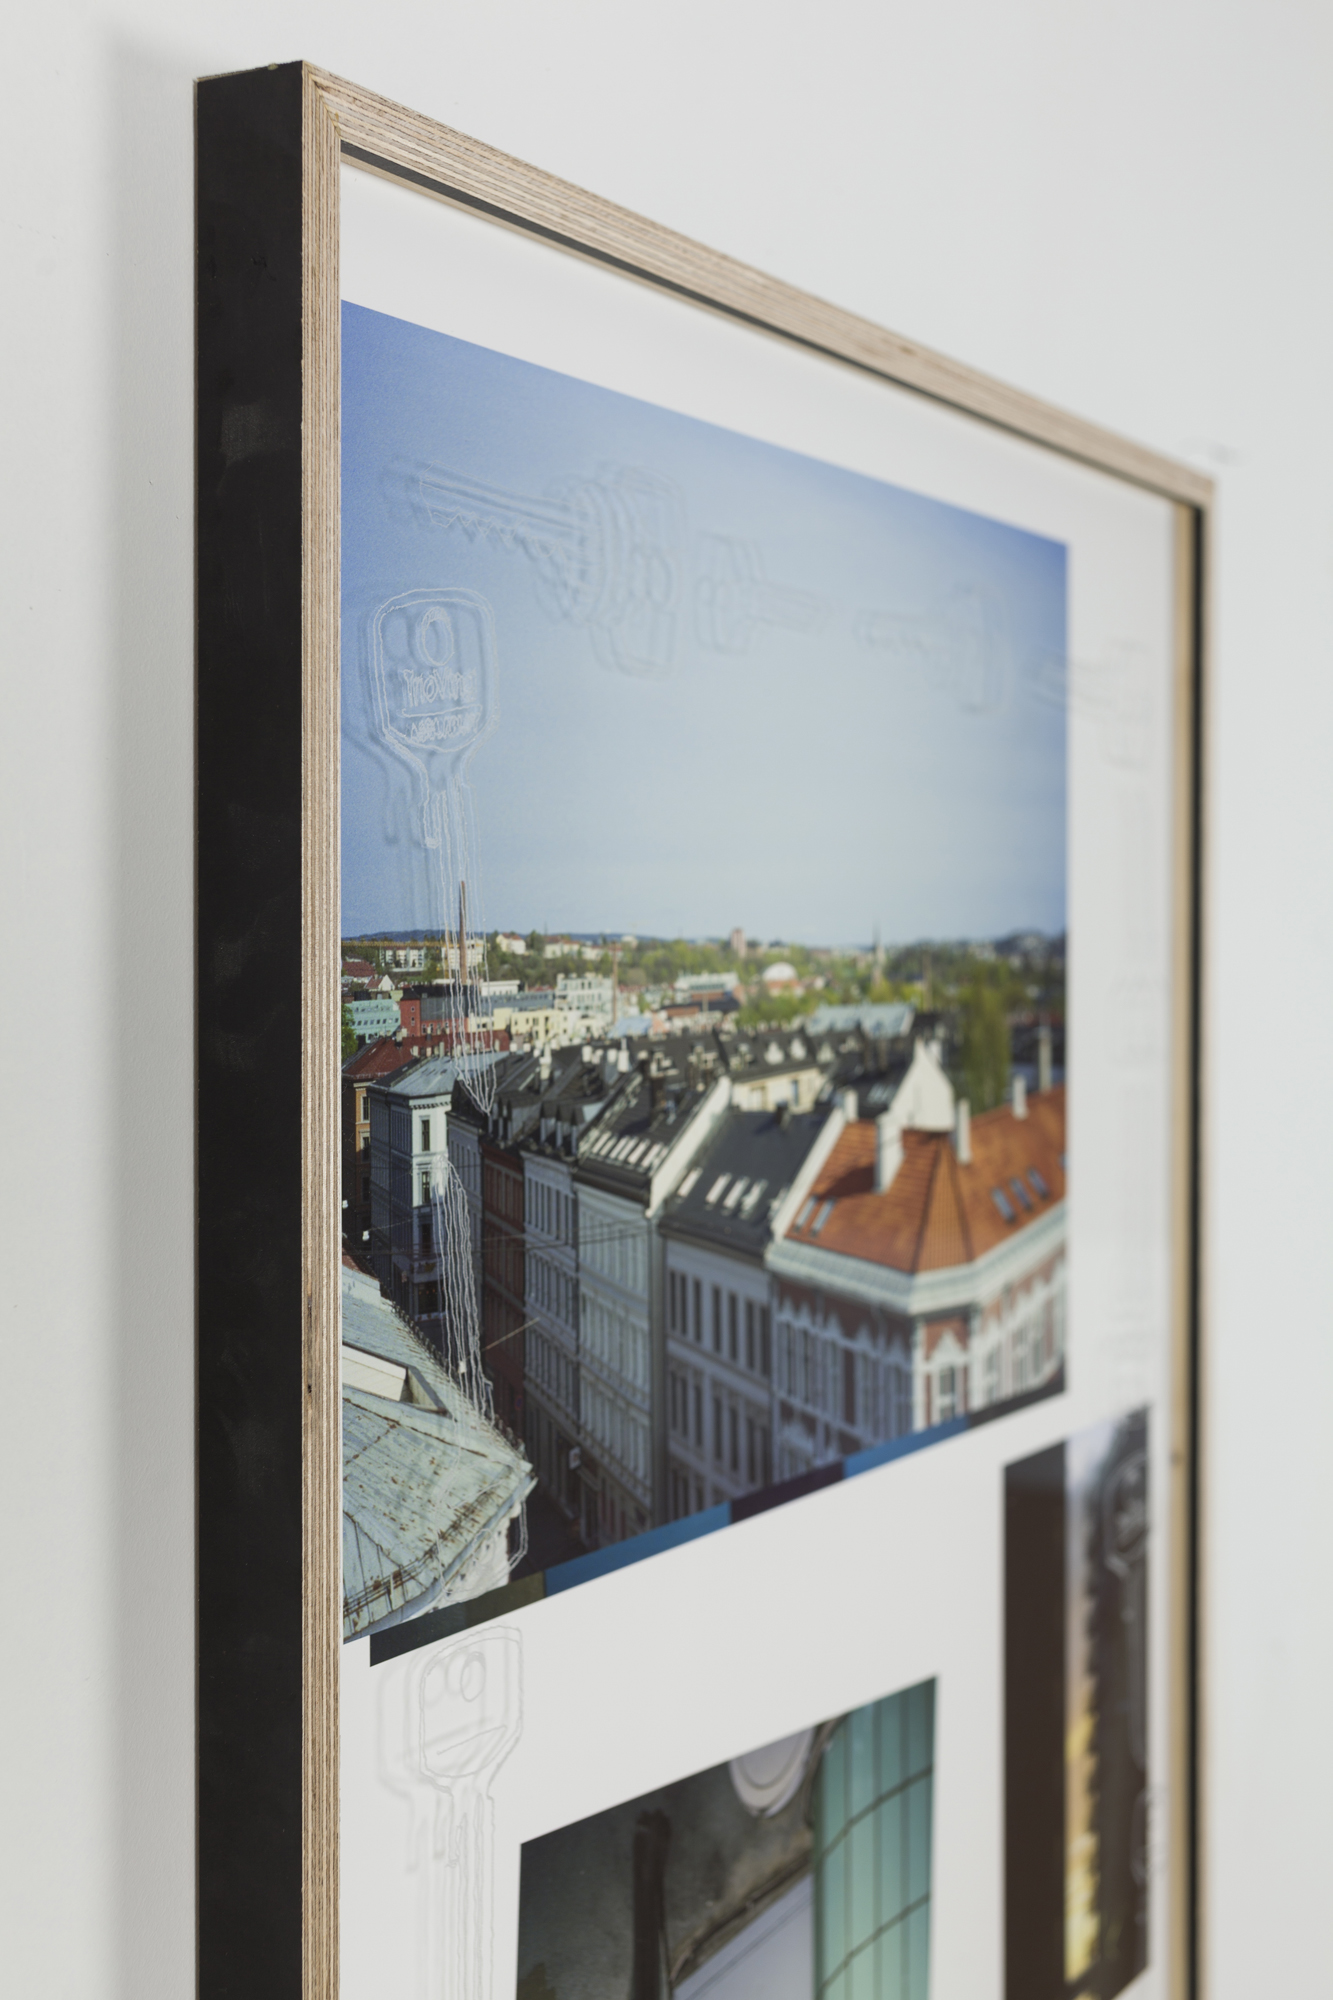 Jon Benjamin Tallerås, Untitled (Lock Picking is Key) VI, 2019, inkjet print, scratched ar-glass, artist made frame, 63 x 90 cm, unique